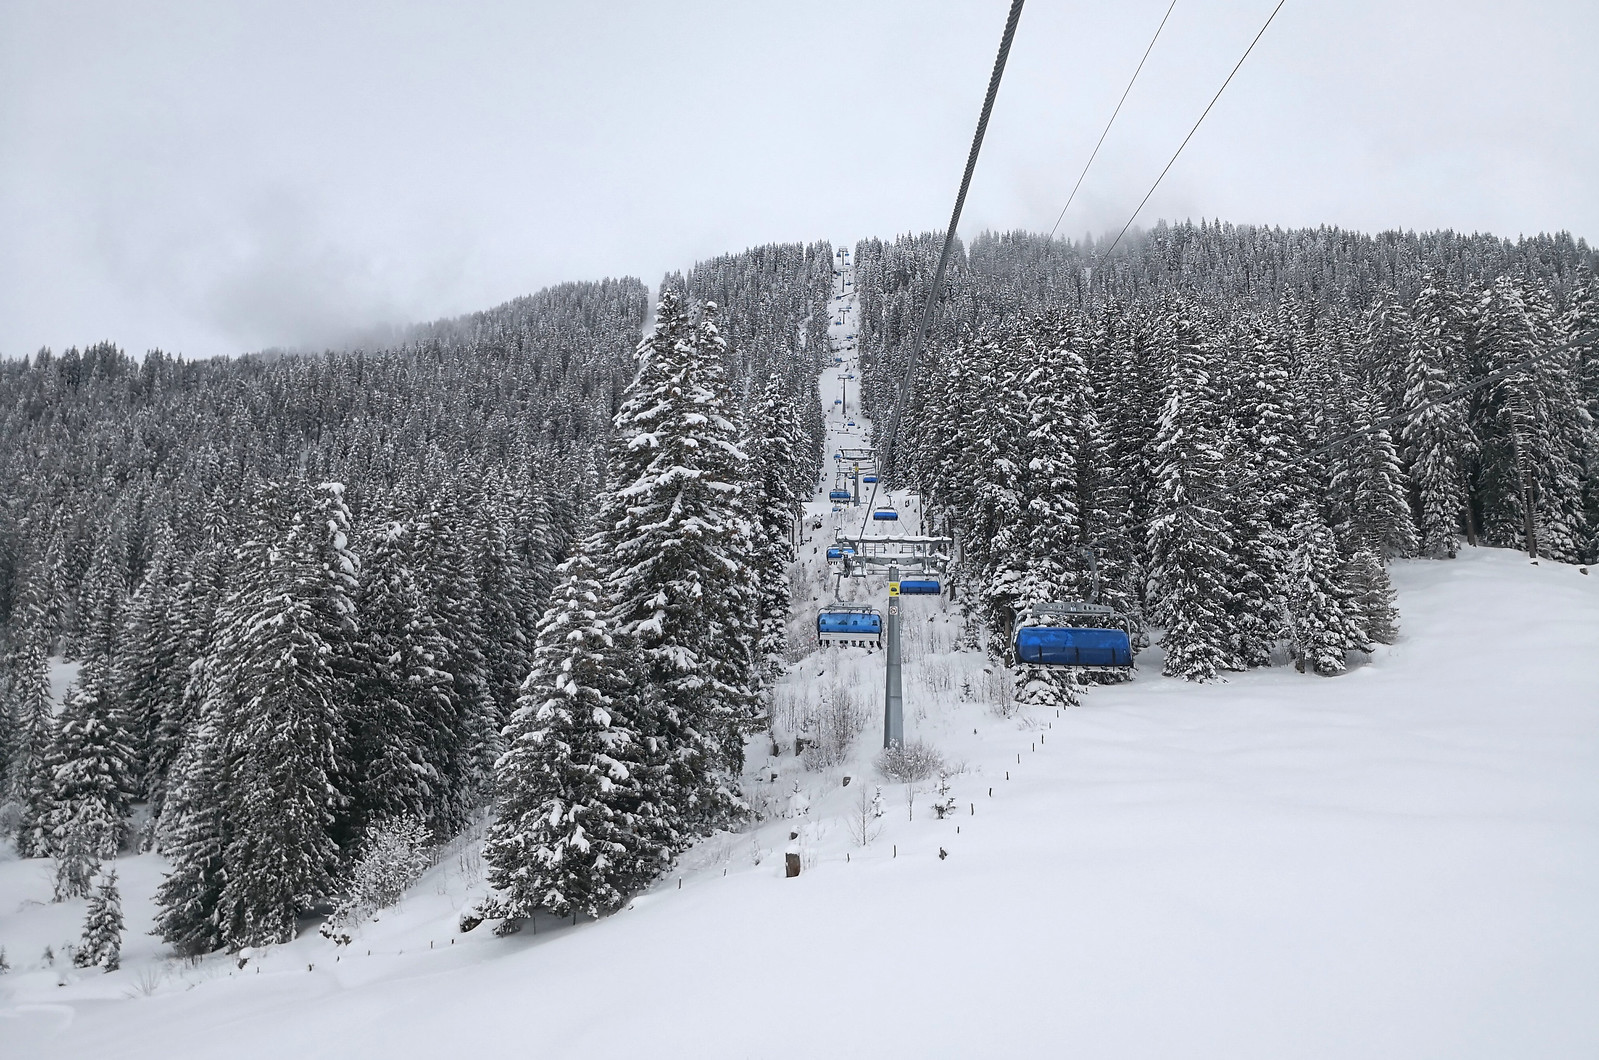 Chairlift at Bidmi